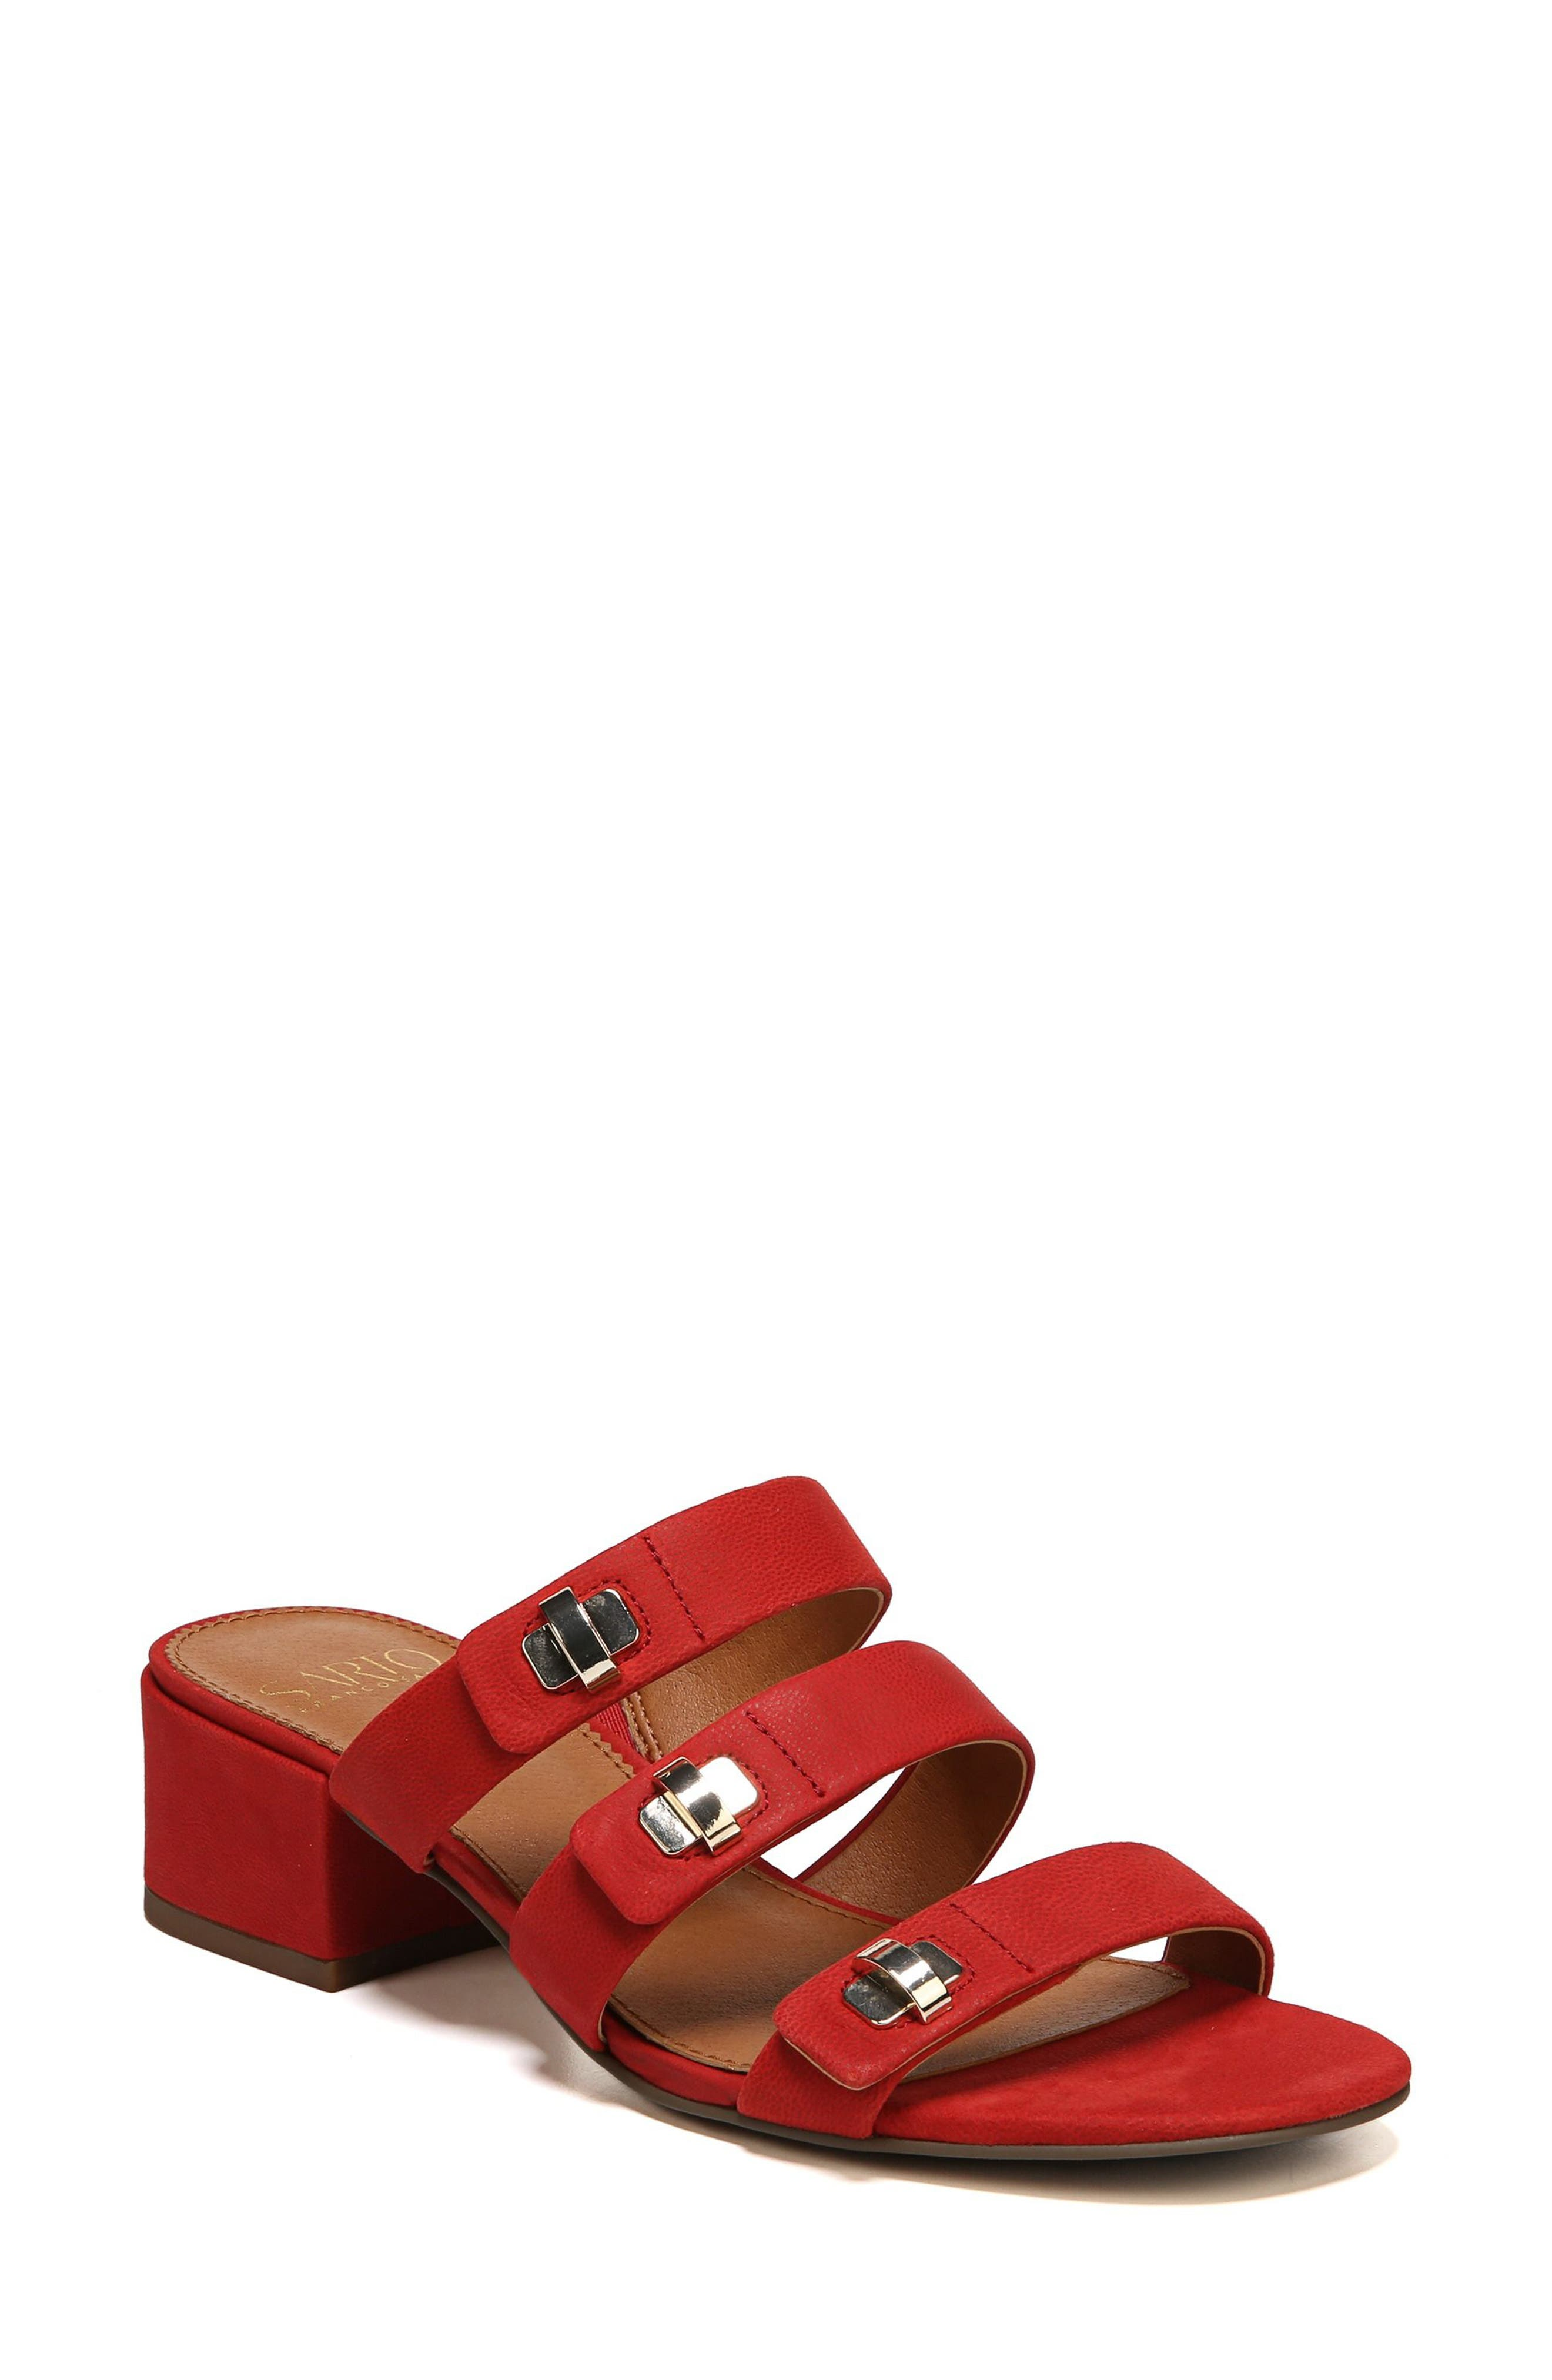 Arabesque Strappy Slide Sandal,                         Main,                         color, Pop Red Nubuck